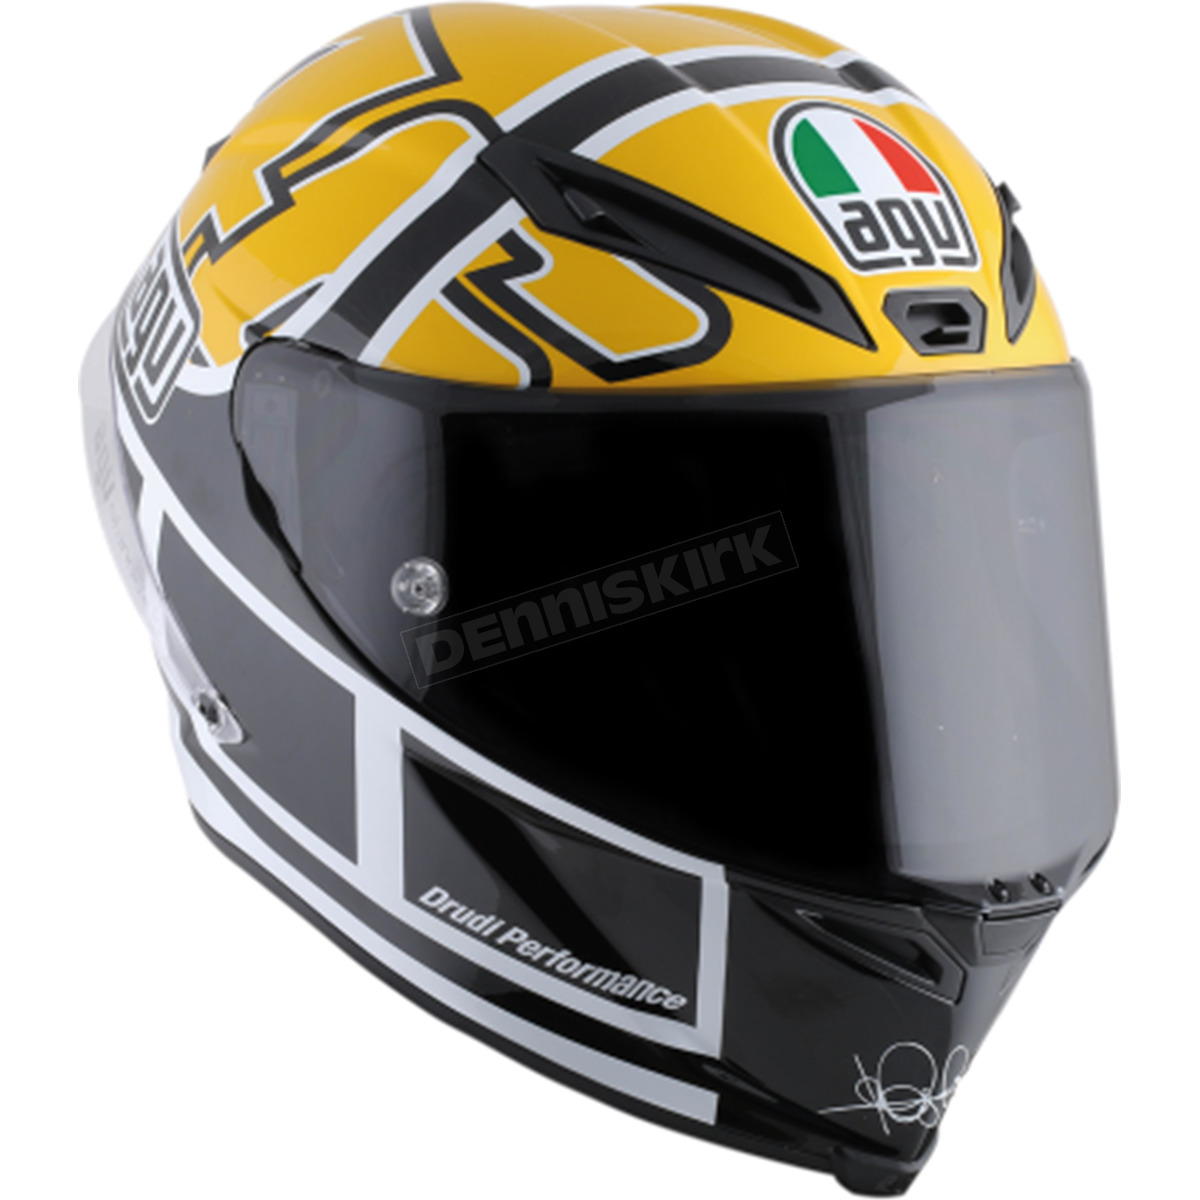 agv yellow black corsa r goodwood helmet 6121o0hy00108 motorcycle dennis kirk. Black Bedroom Furniture Sets. Home Design Ideas